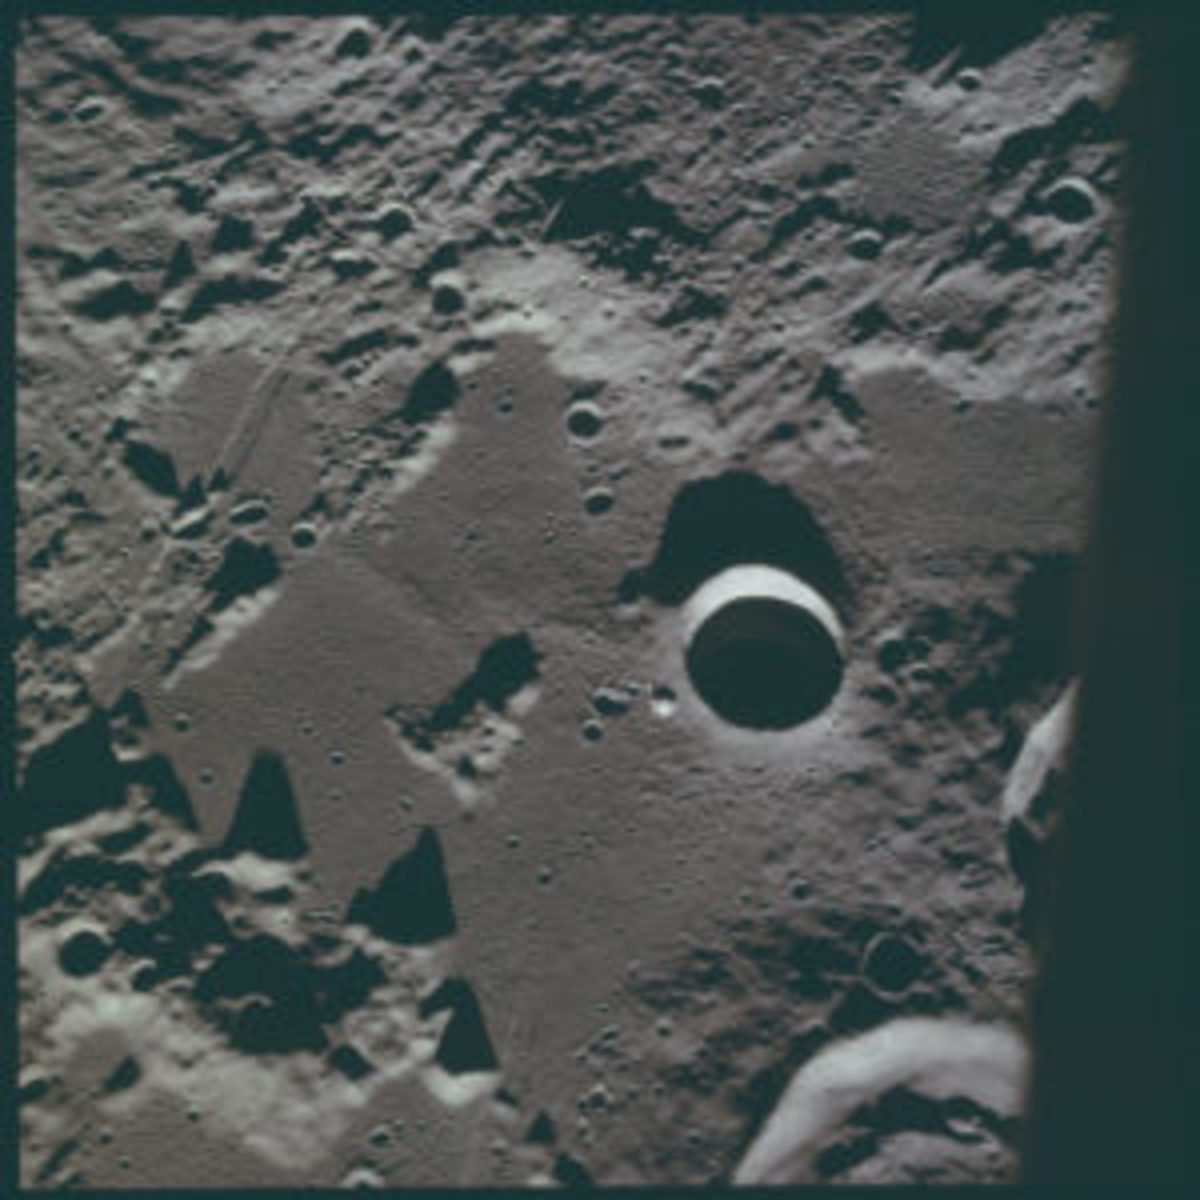 This is a photograph taken on an actual Apollo 11 mission. Photo courtesy of NASA/Project Apollo Archive